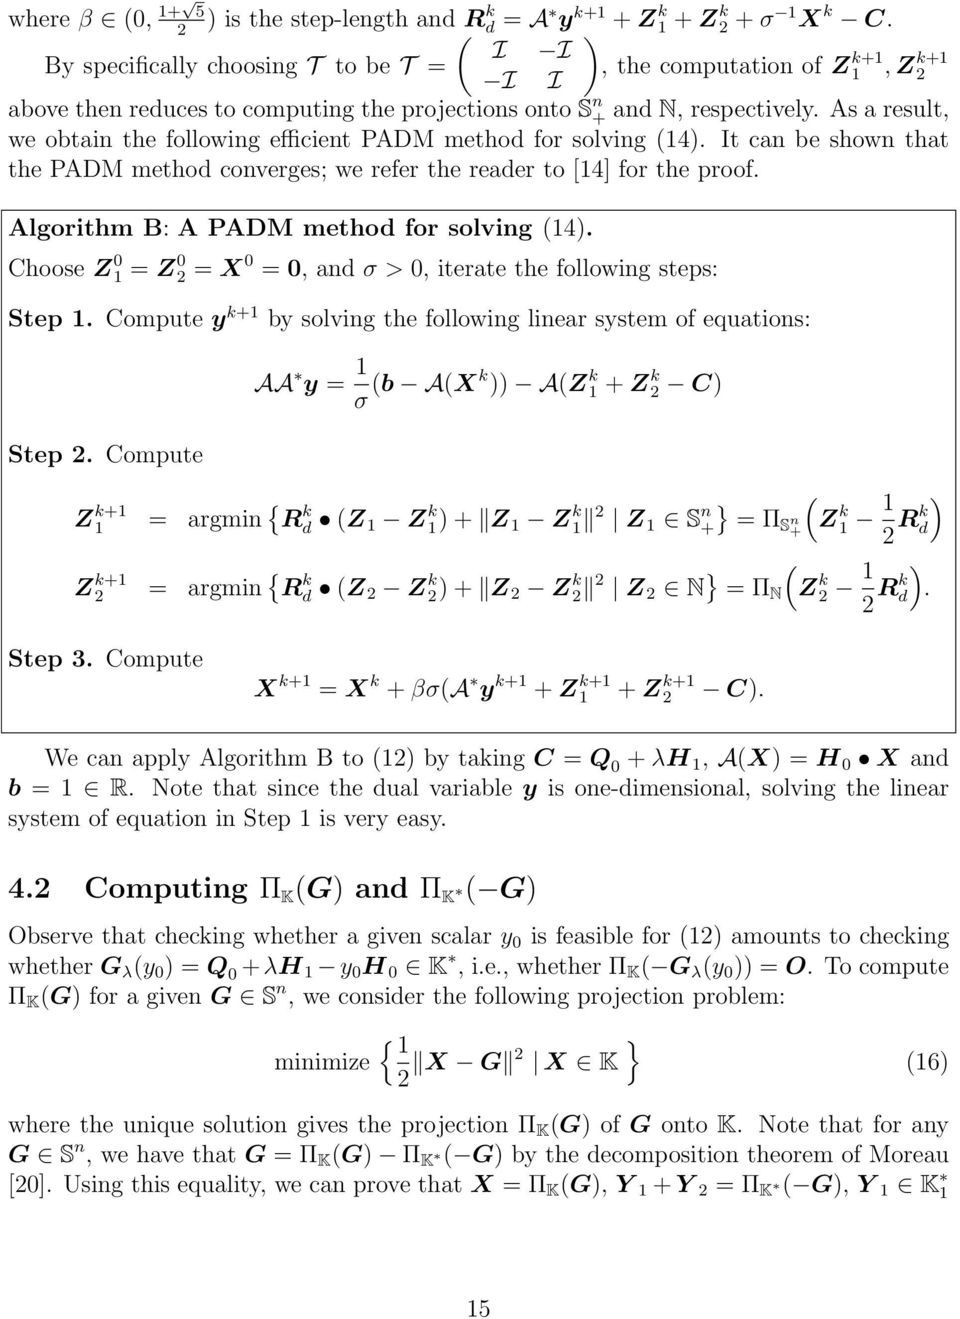 As a result, we obtain the following efficient PADM method for solving (14). It can be shown that the PADM method converges; we refer the reader to [14] for the proof.